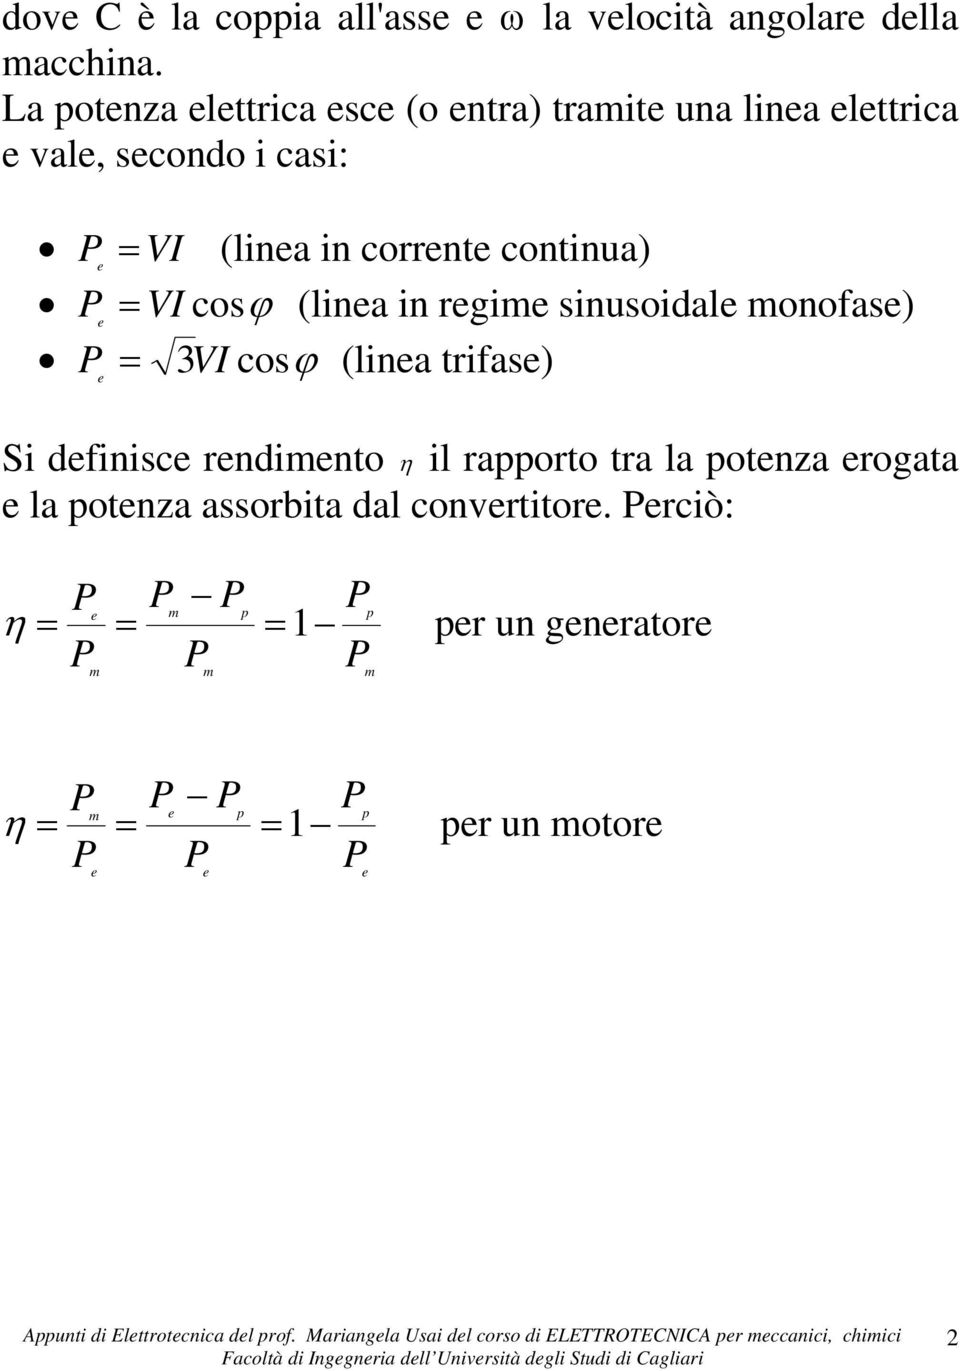 continua) = VI cosϕ (lina in rgi sinusoidal onofas) = 3VI cosϕ (lina trifas) Si dfinisc rndinto